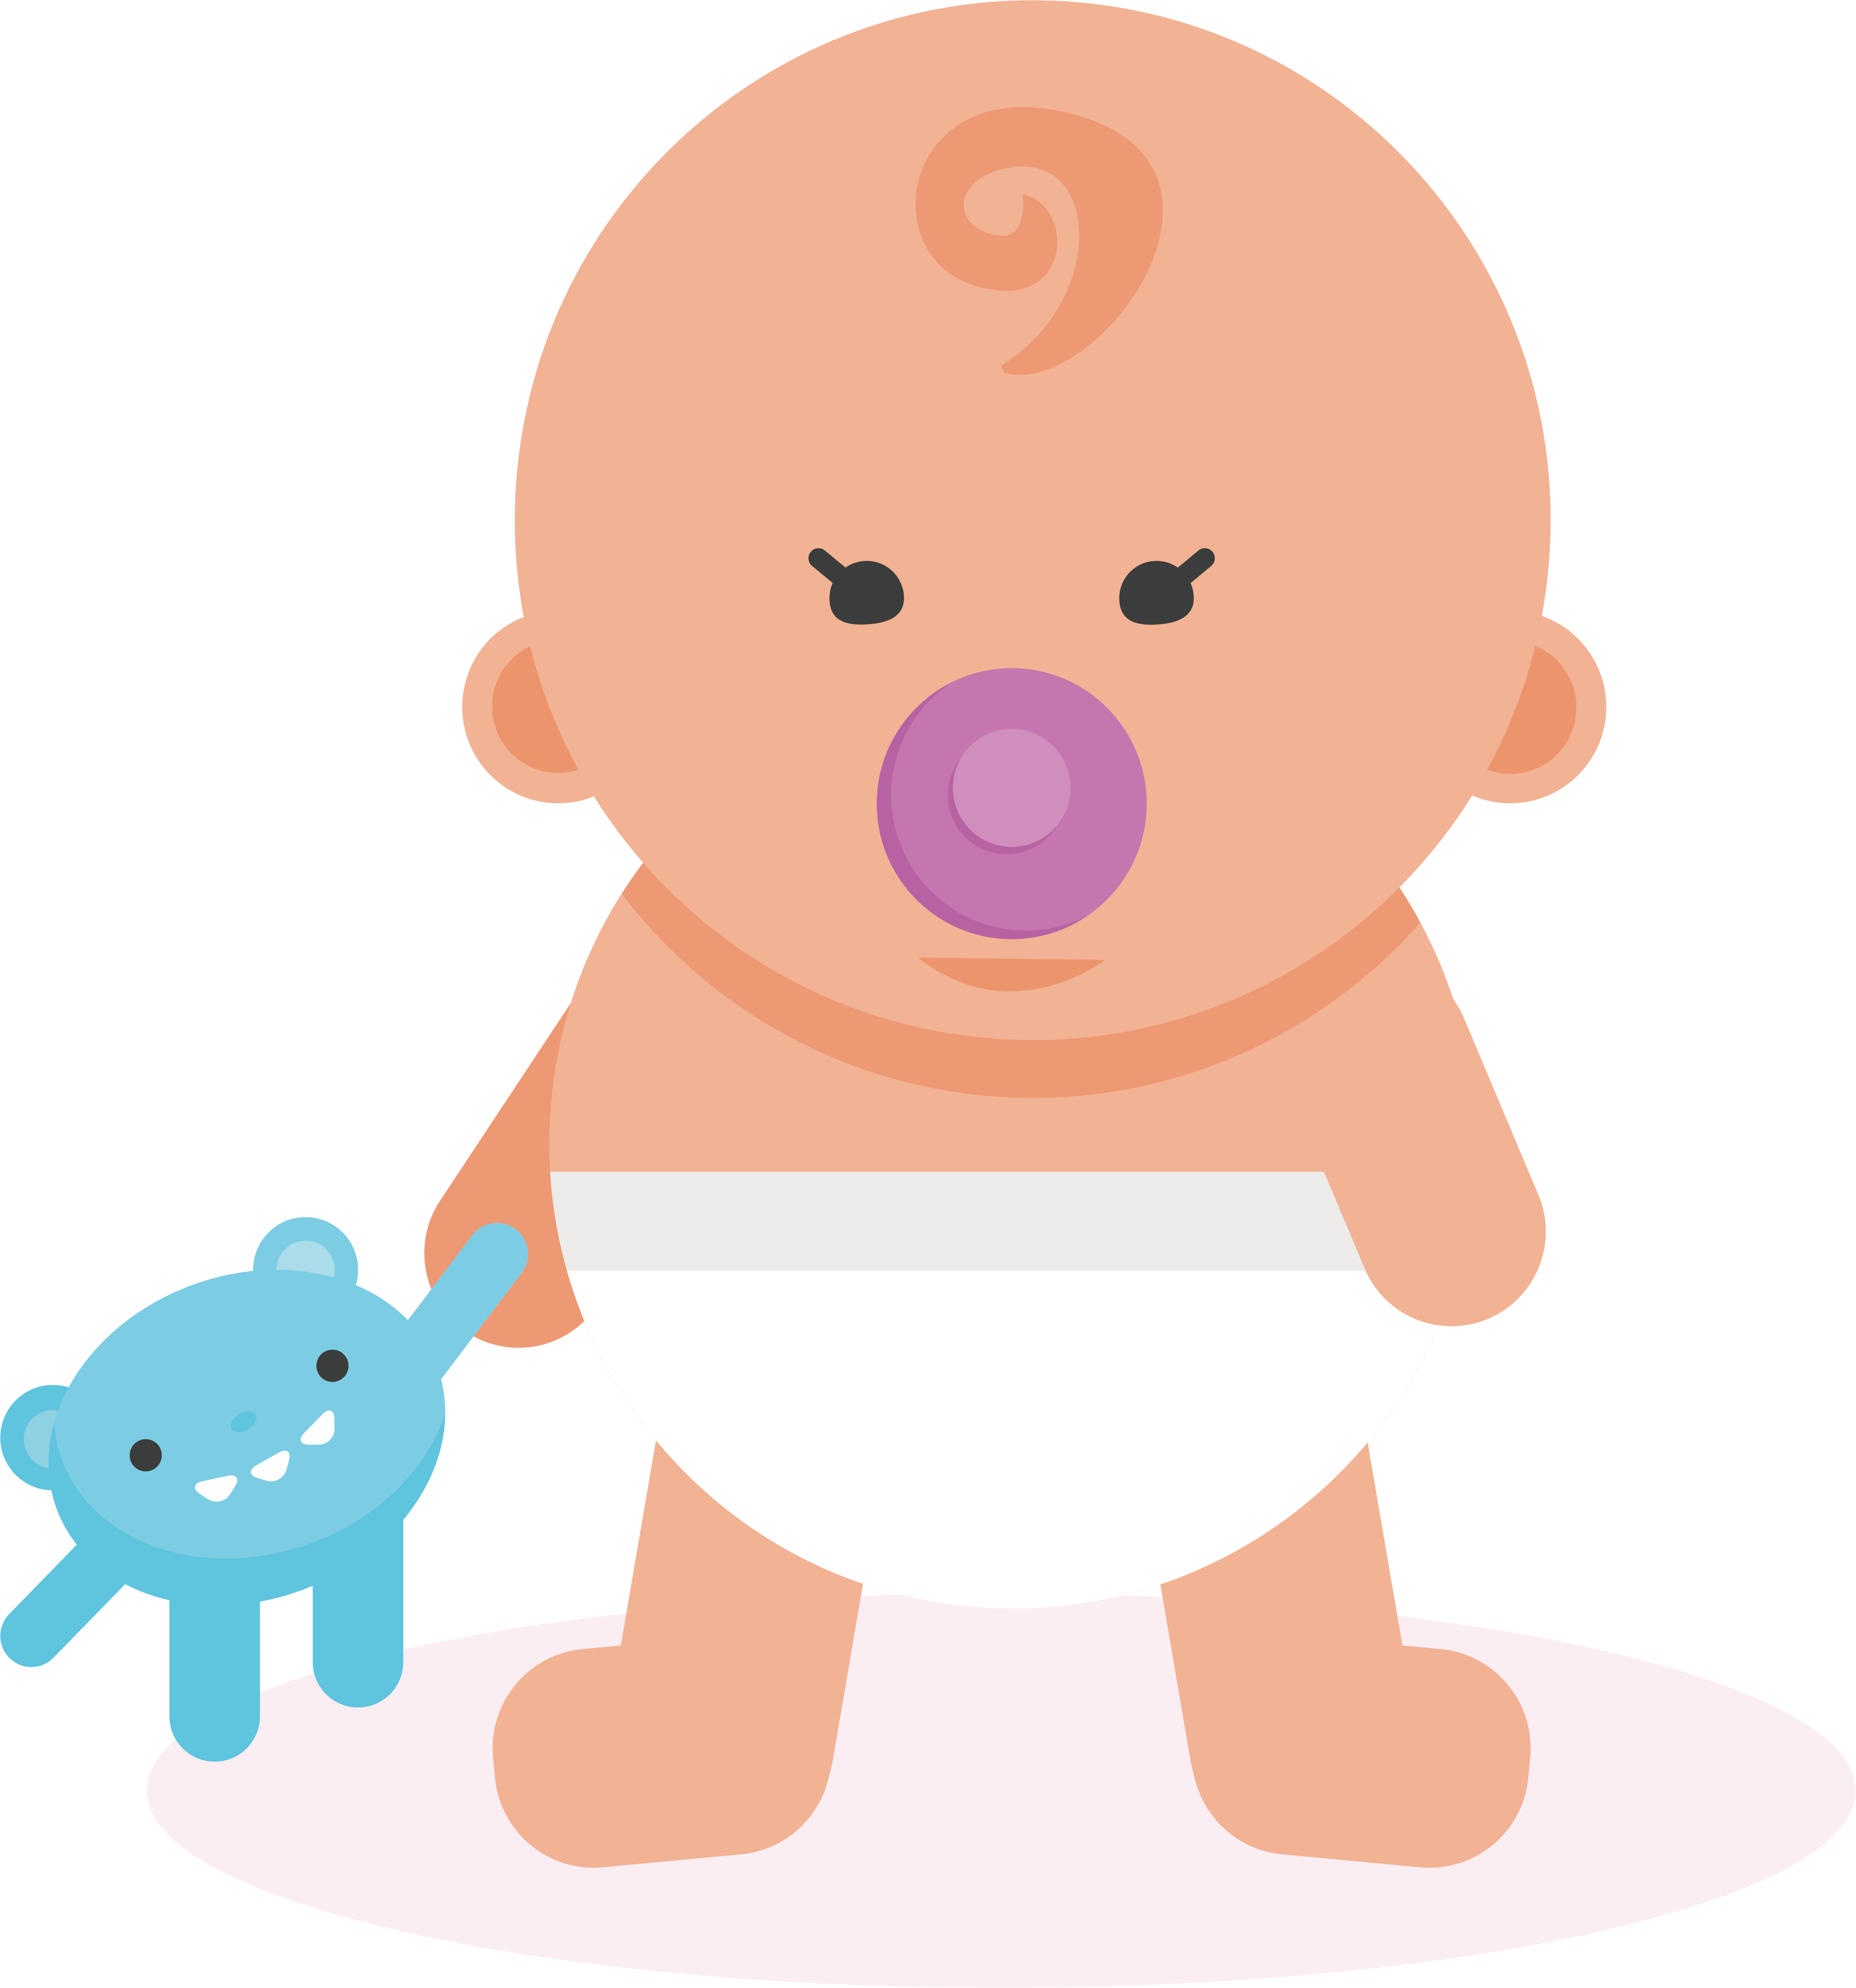 Infant clipart baby design. Clip art angry transprent